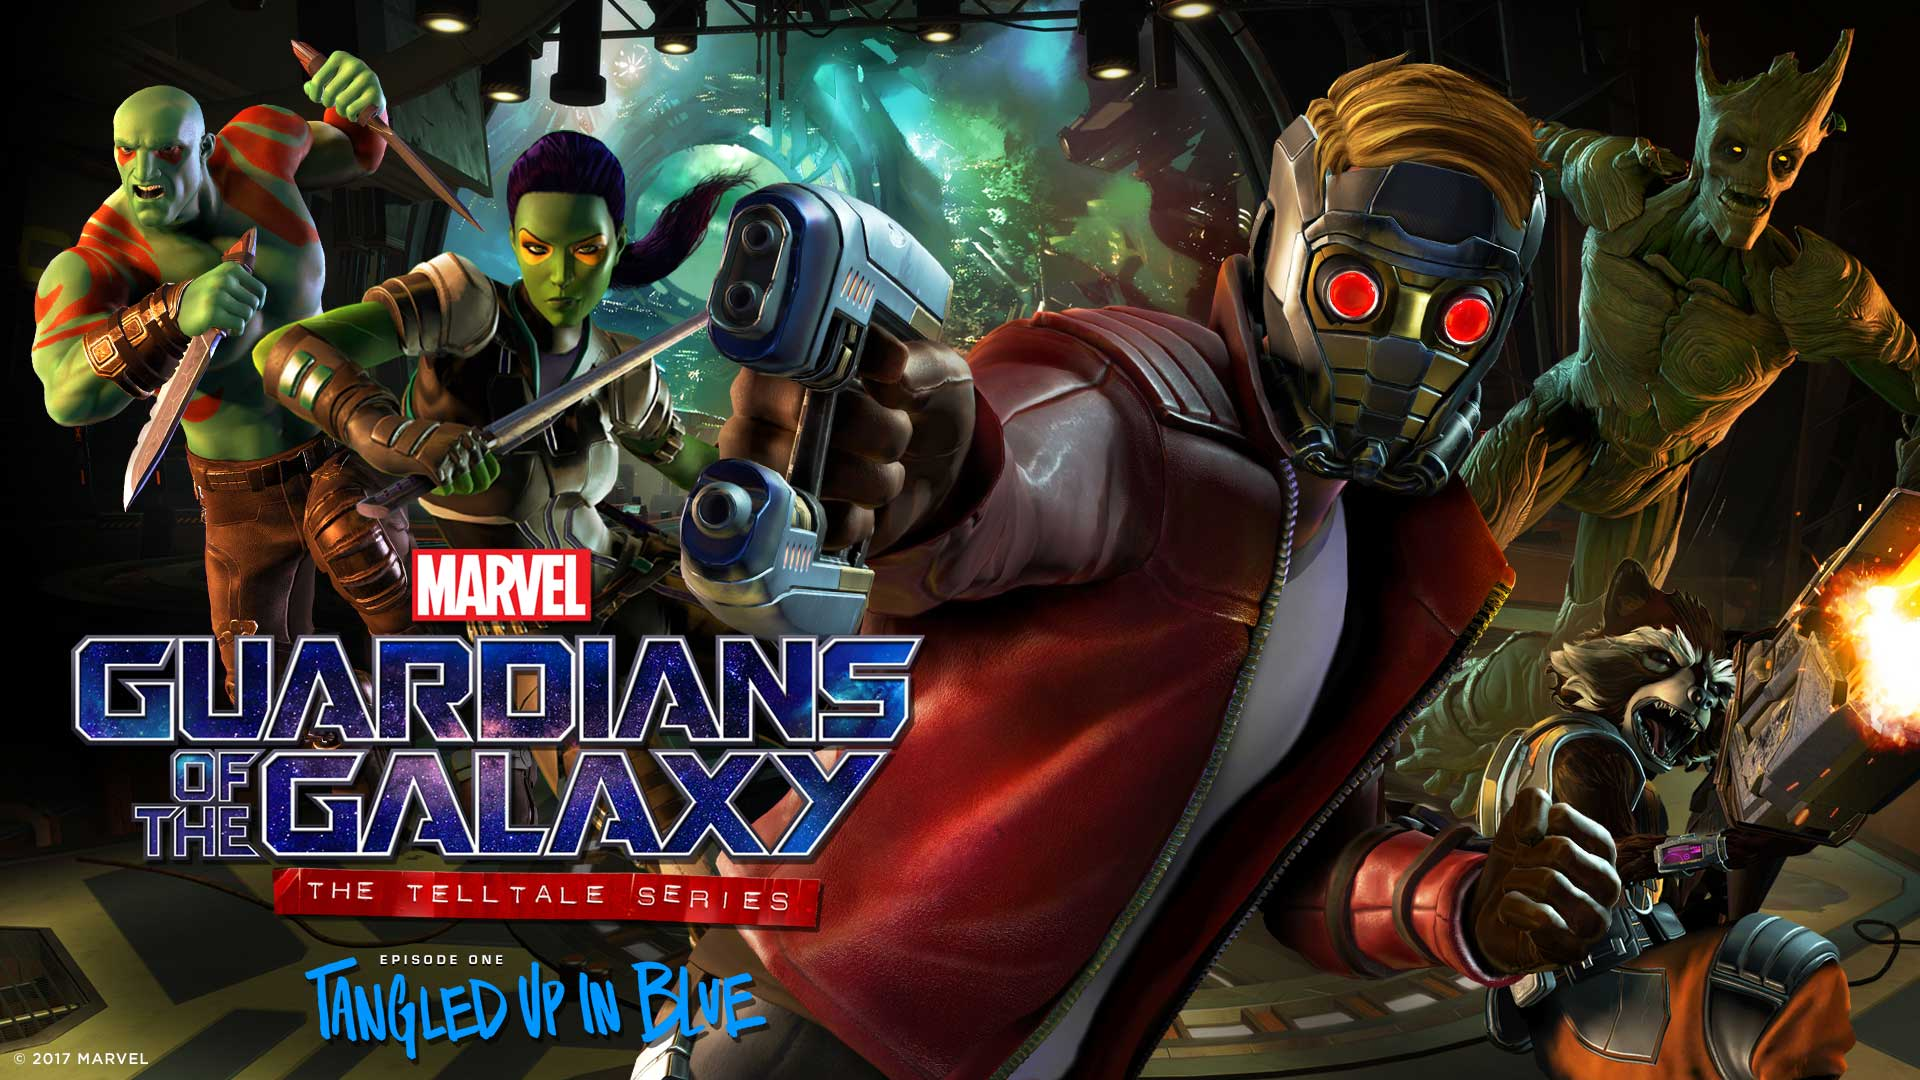 guardians of the galaxy telltale ep1 tangled up in blue